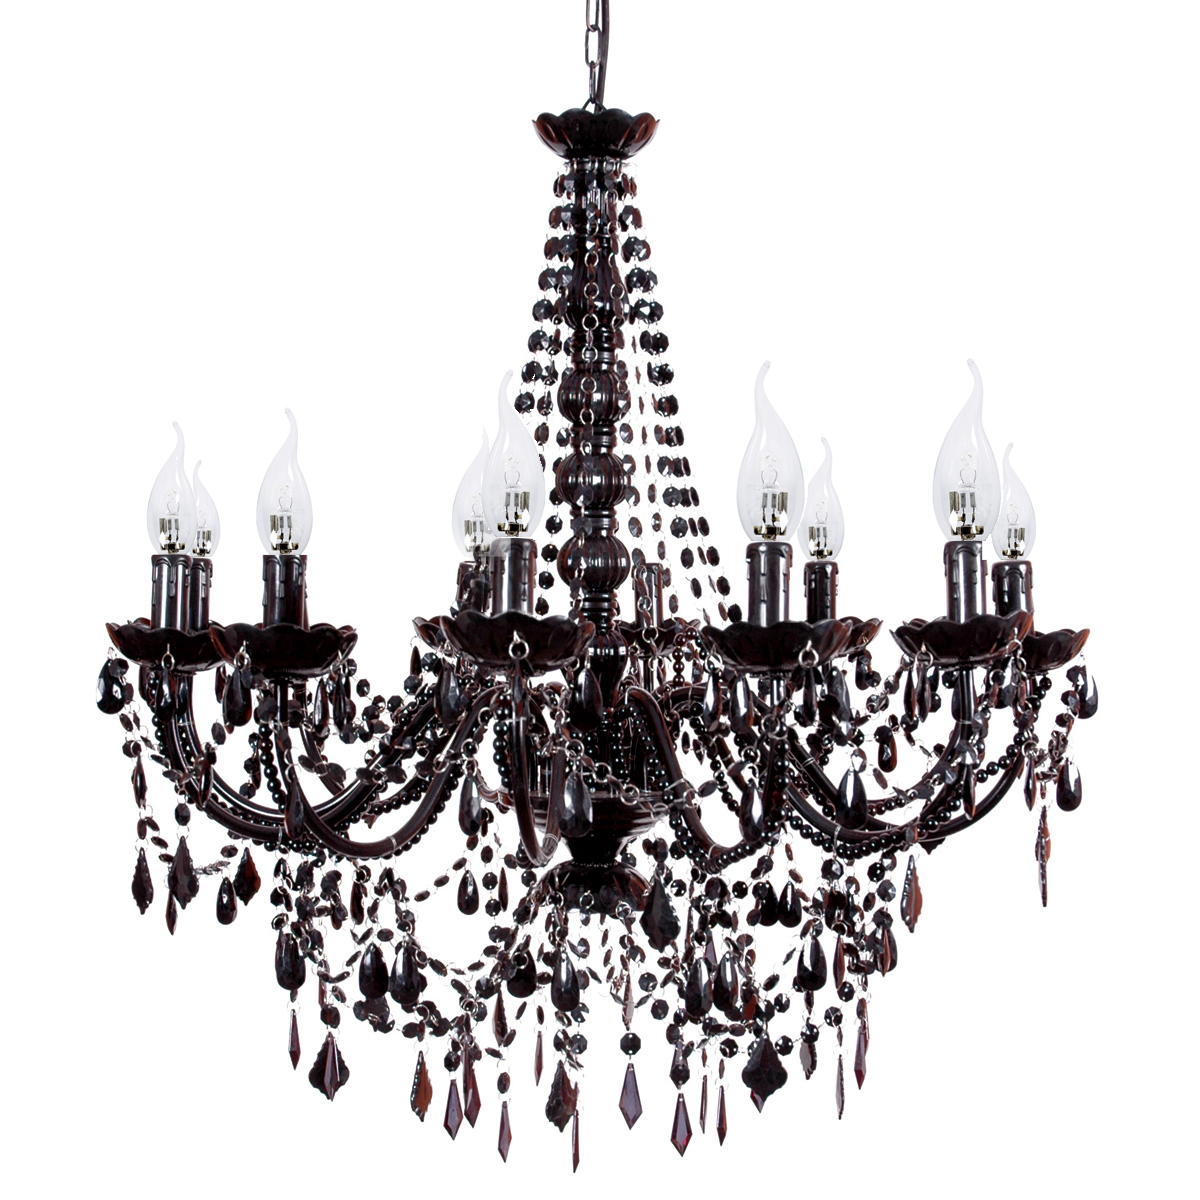 French Provincial Lighting Australia Cassie French Provincial 12 Arm Black Acrylic Chandelier